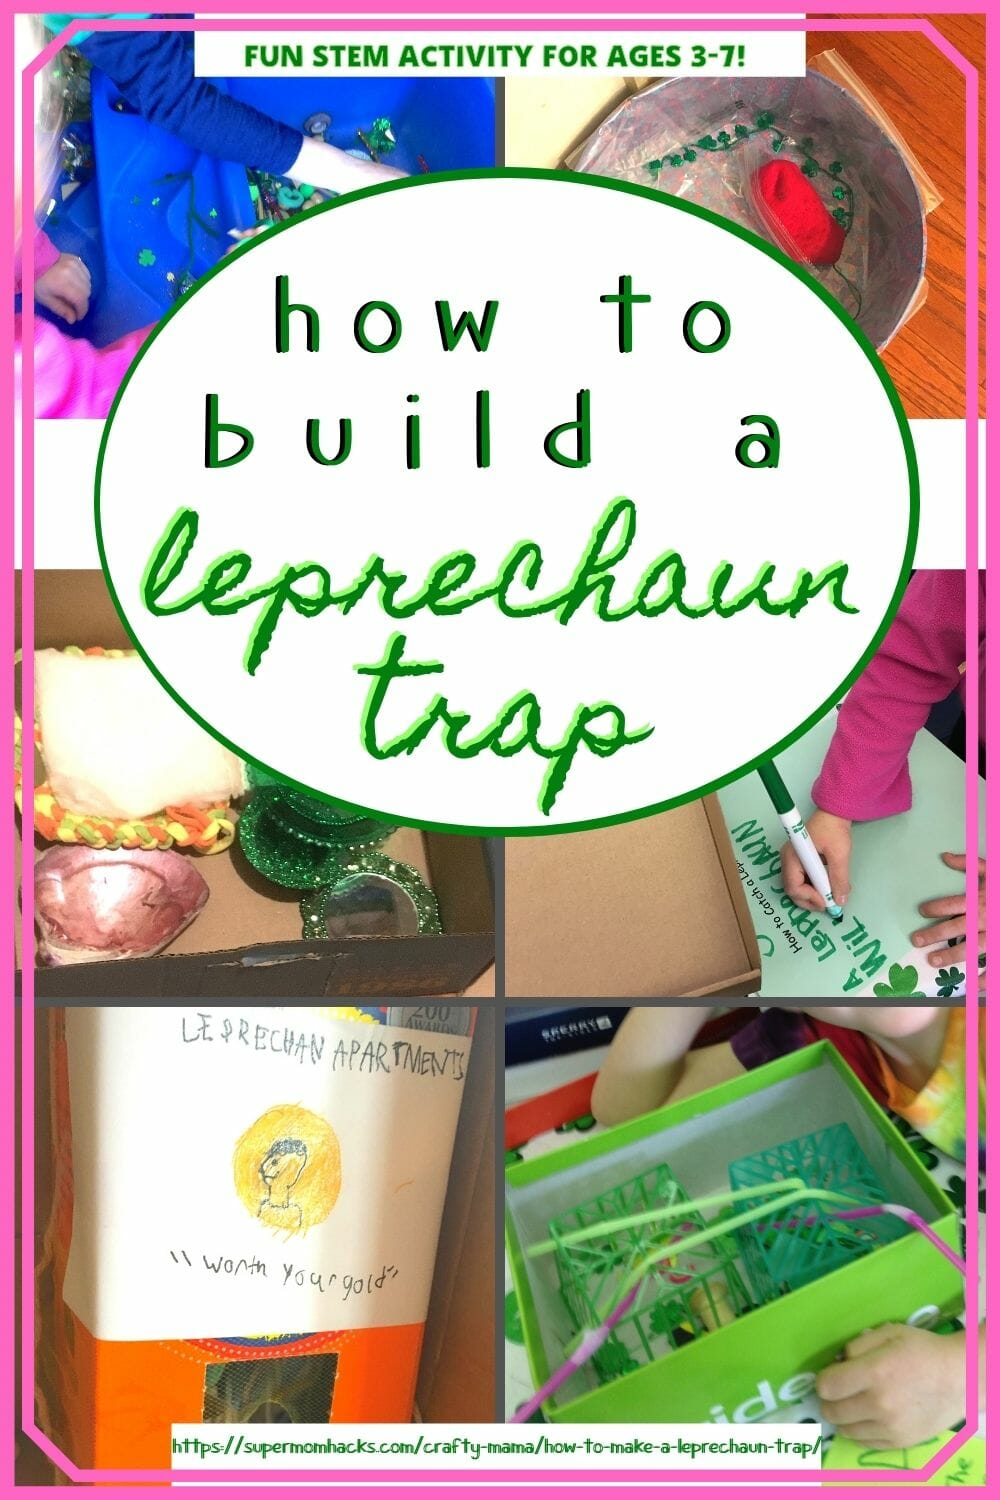 You don't need to know how to make a leprechaun trap to guide your littles through this super-fun STEM activity for preschoolers!